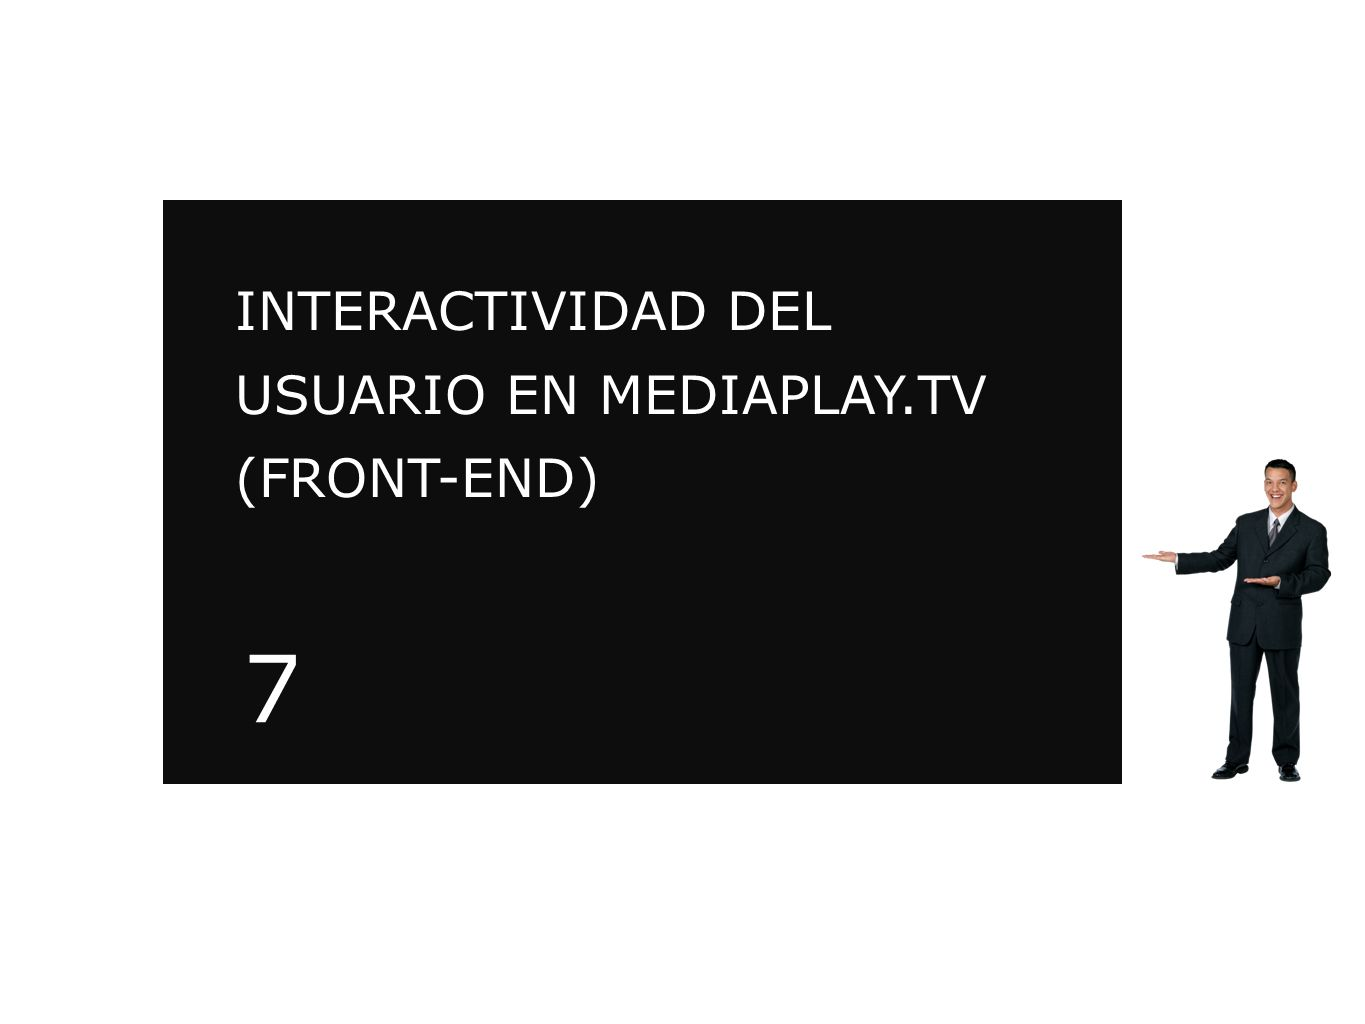 INTERACTIVIDAD DEL USUARIO EN MEDIAPLAY.TV (FRONT-END)